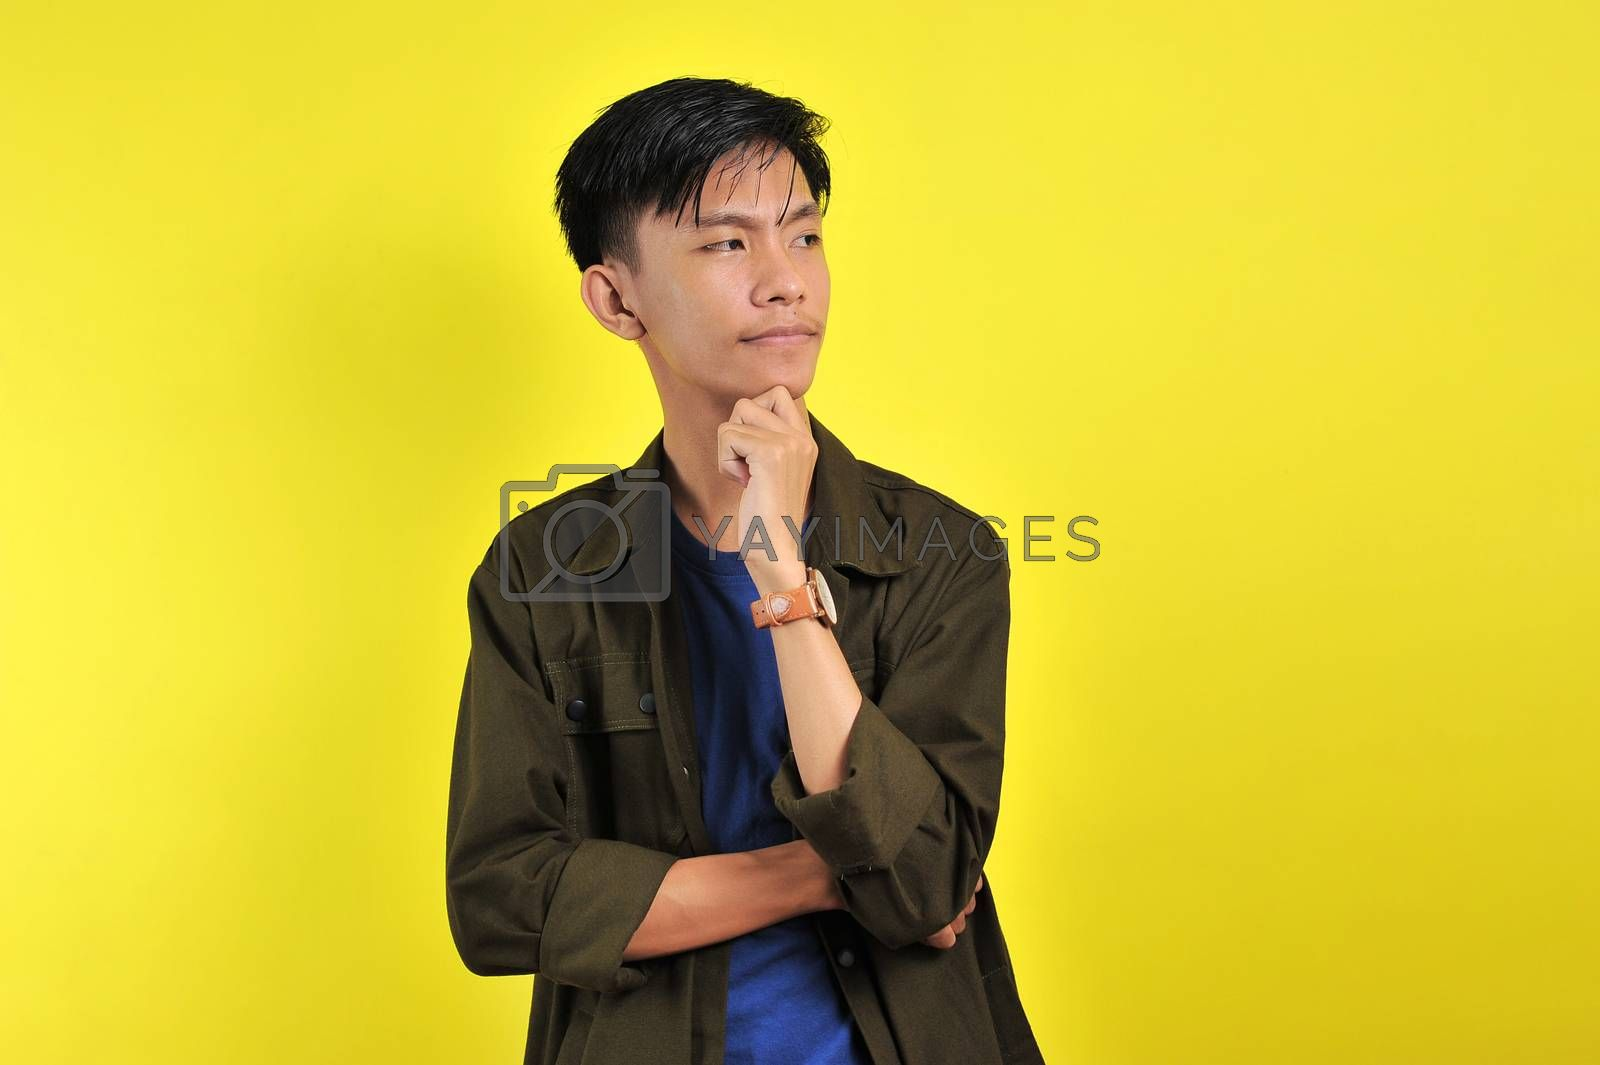 Handsome young Asian man looking at copy space or blank area, isolated on yellow background